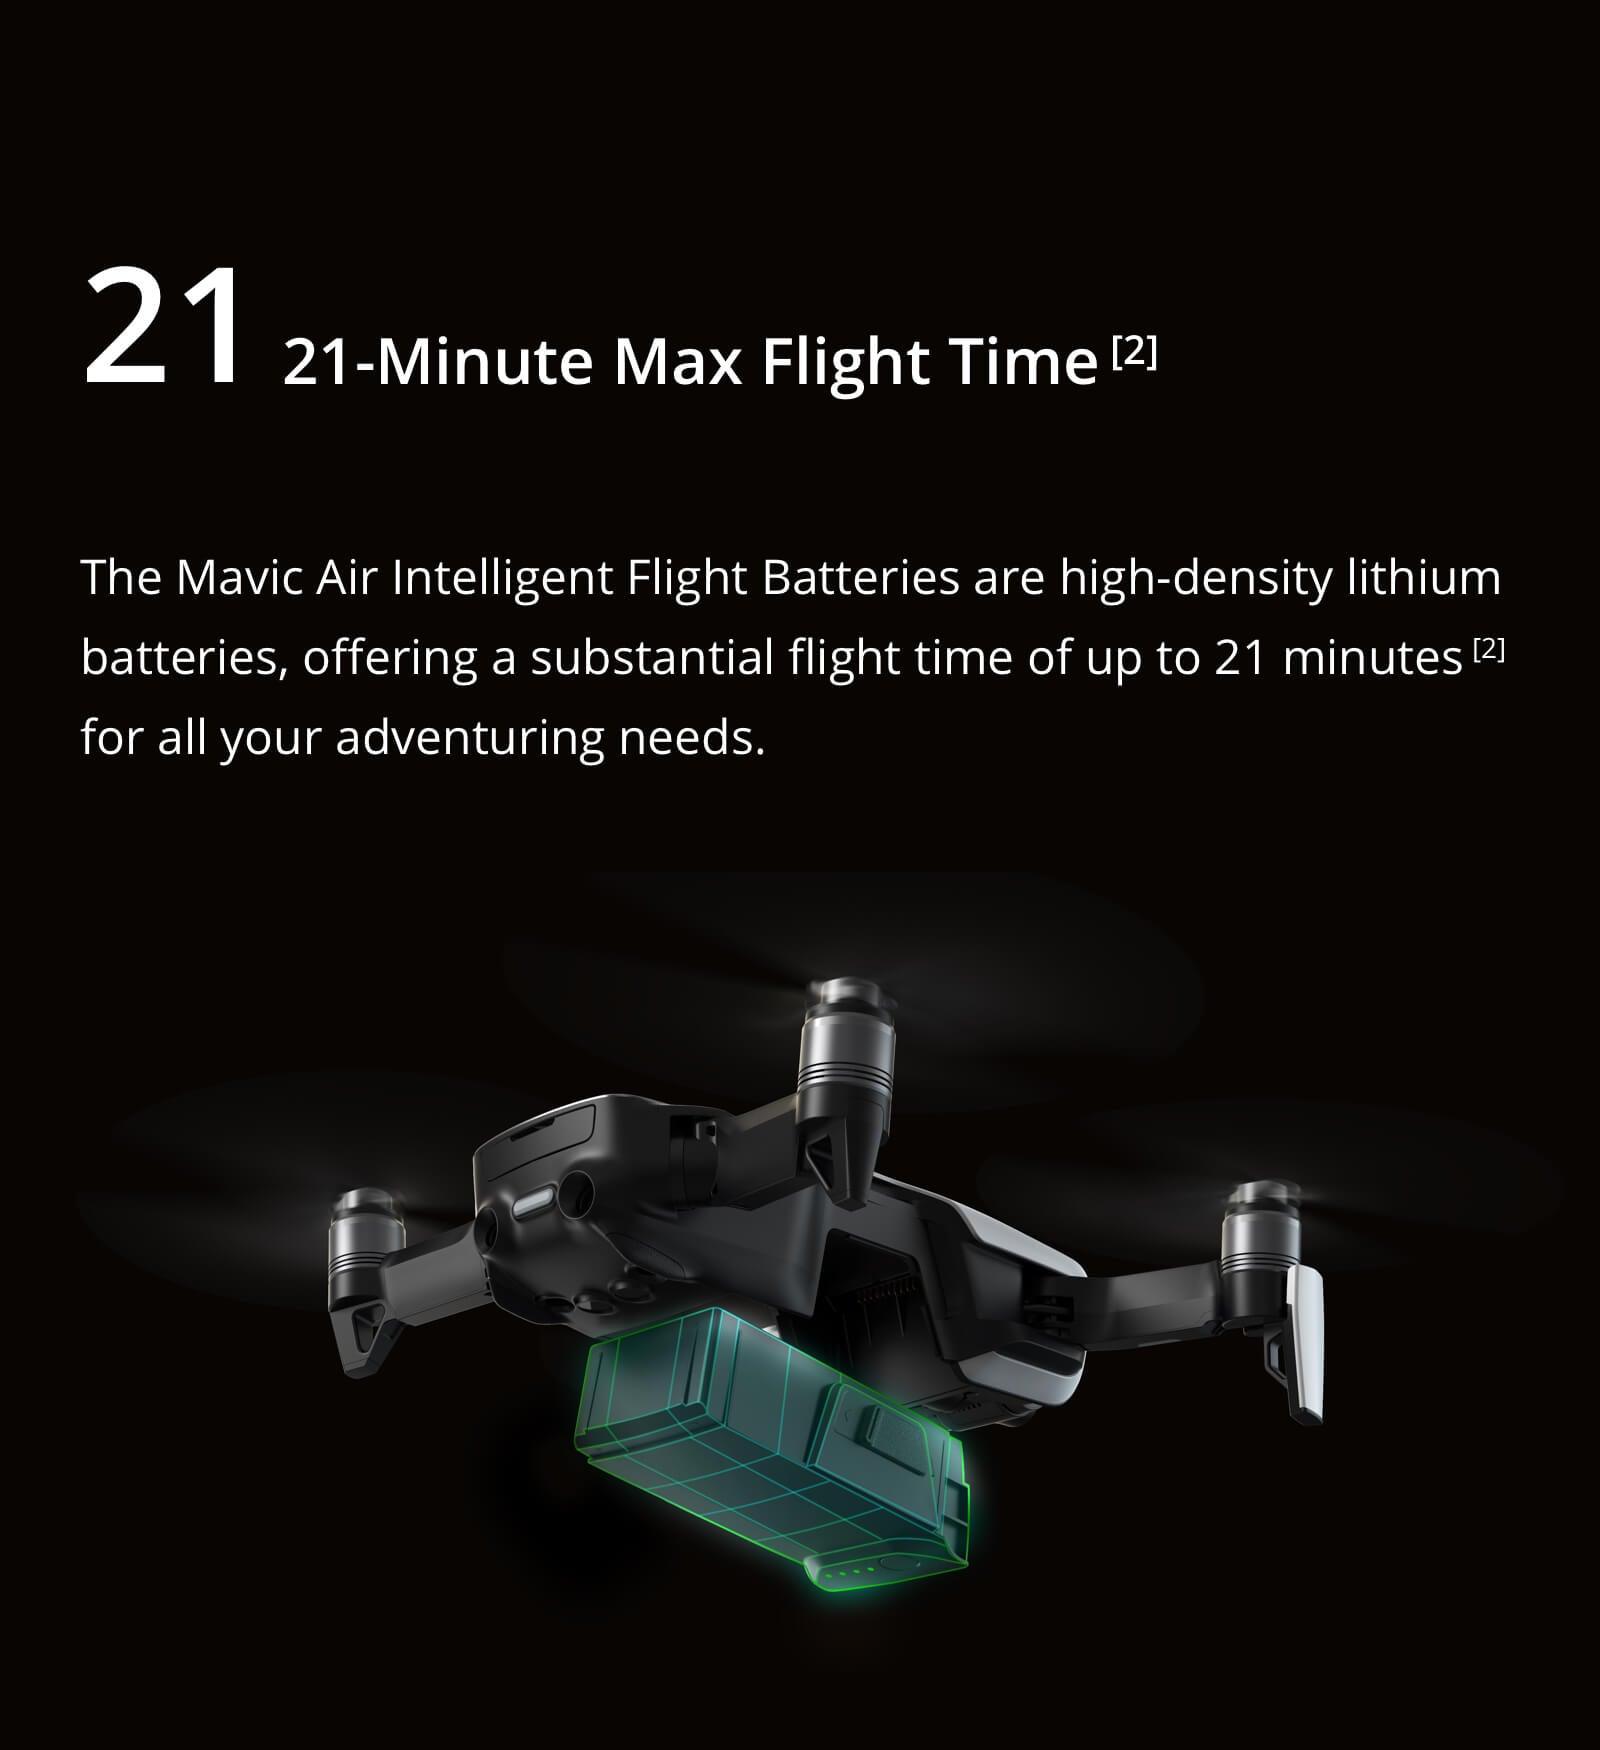 21 Mega Pixel Mavic Air - Available now